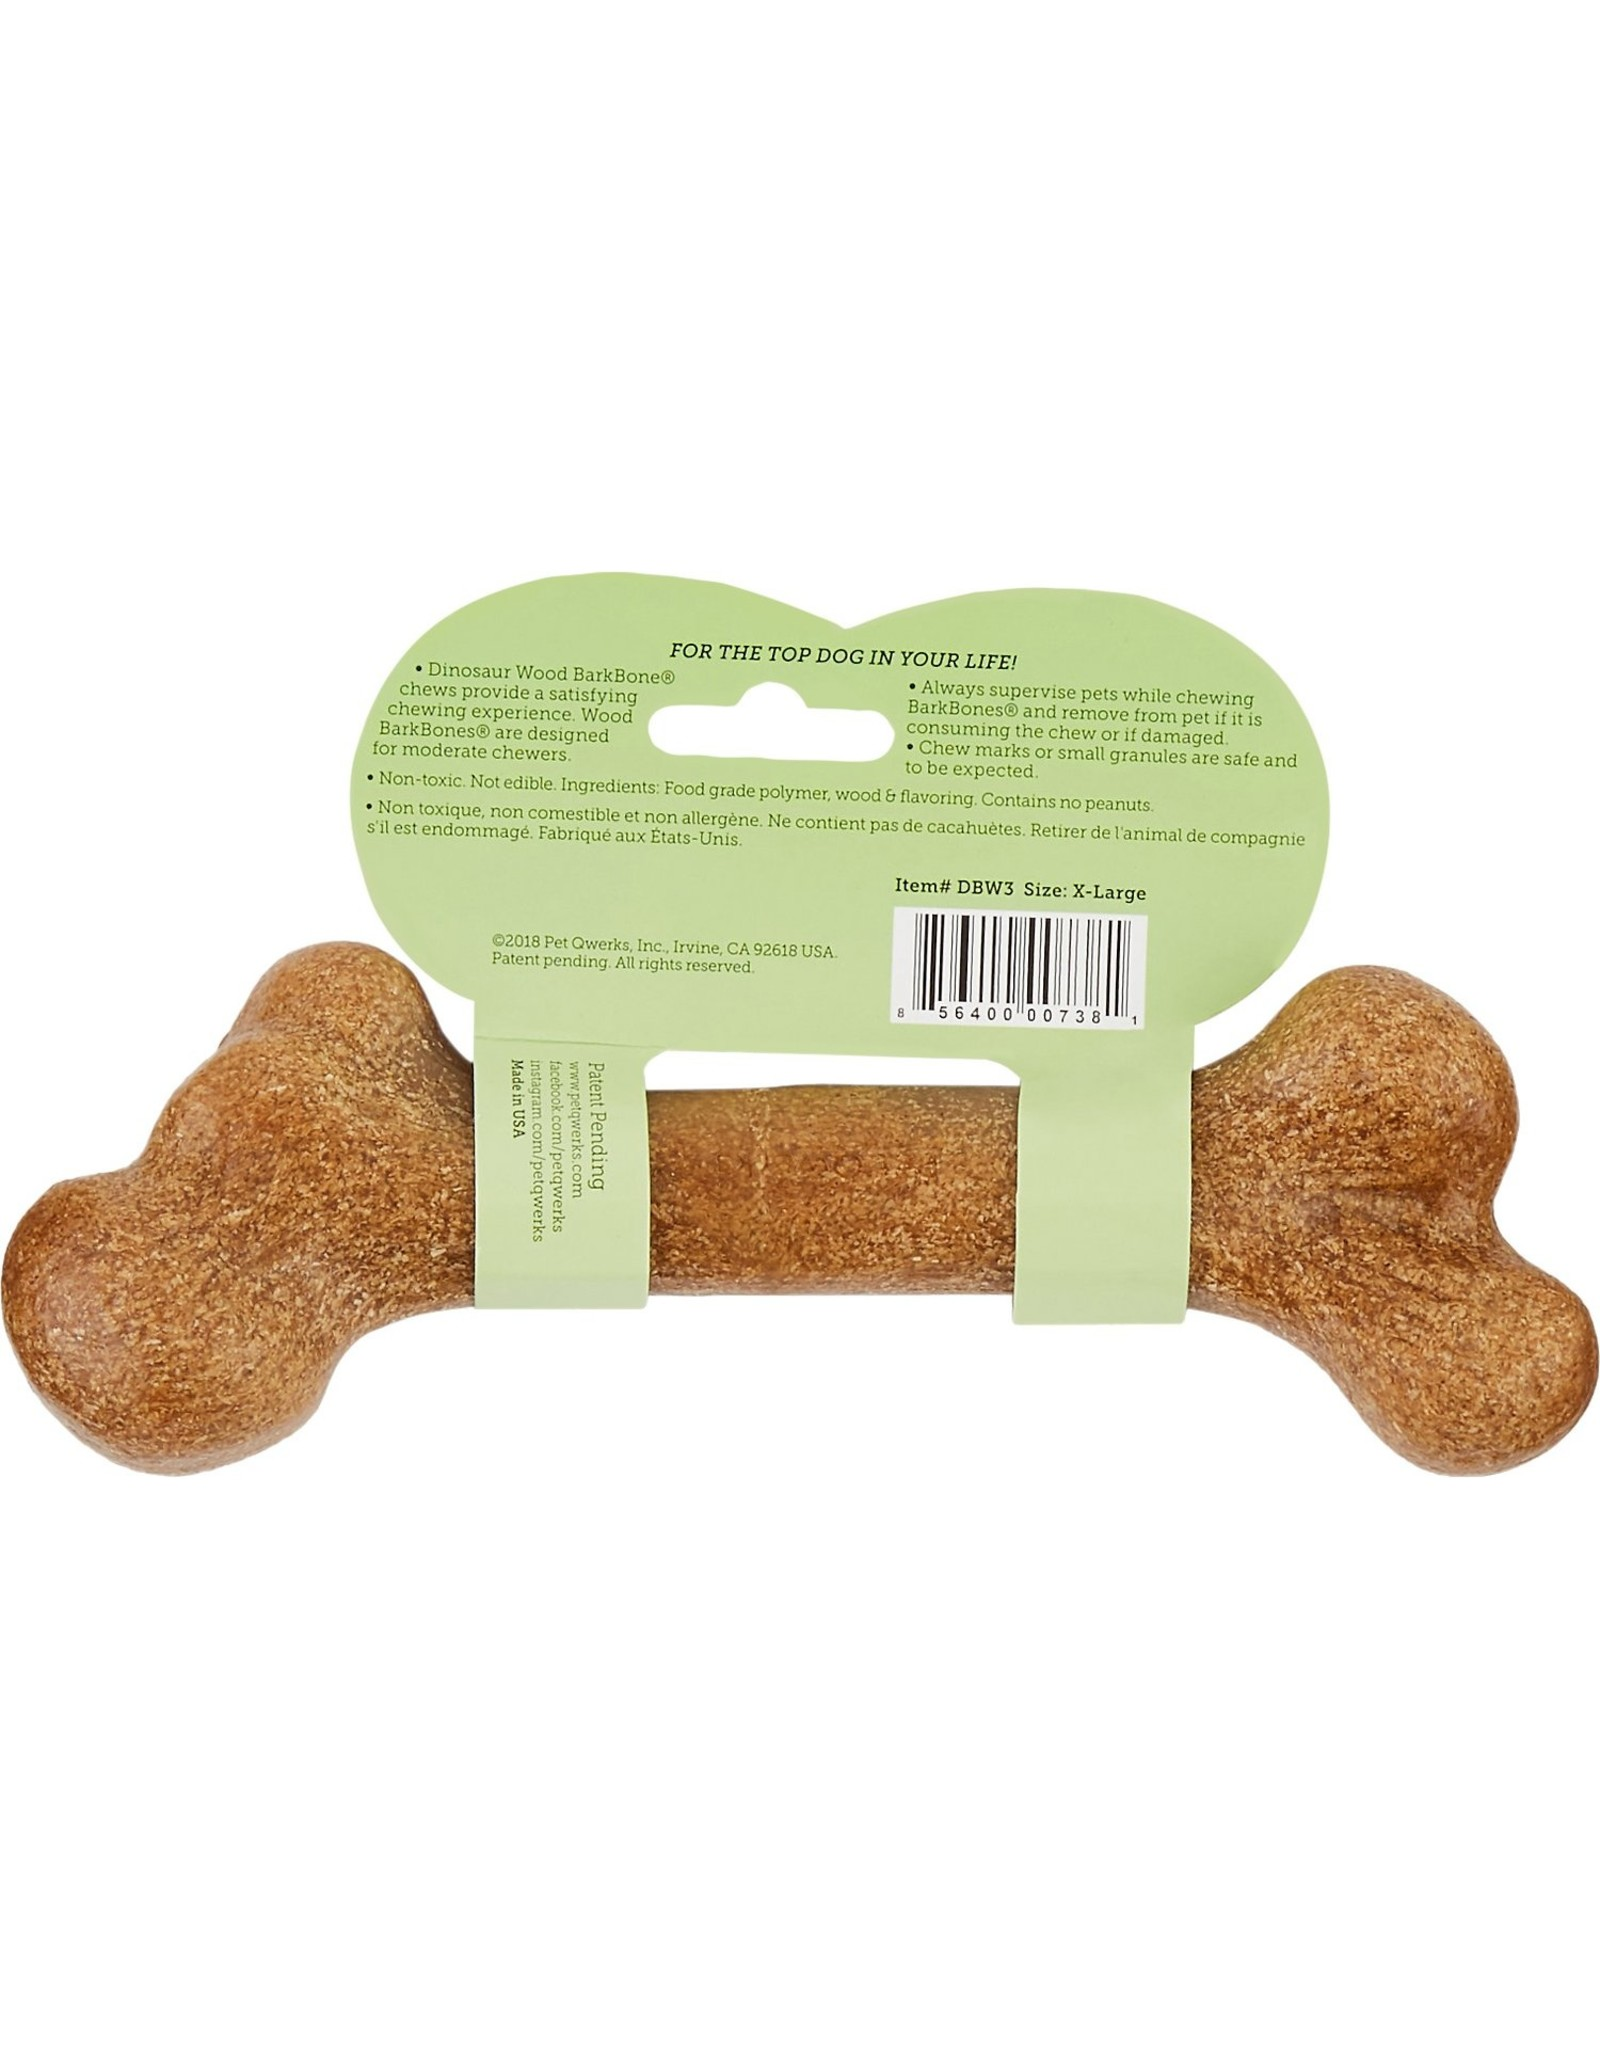 Pet Qwerks PET QWERKS WOOD & PEANUT BUTTER DINOSAUR BARKBONE CHEW TOY